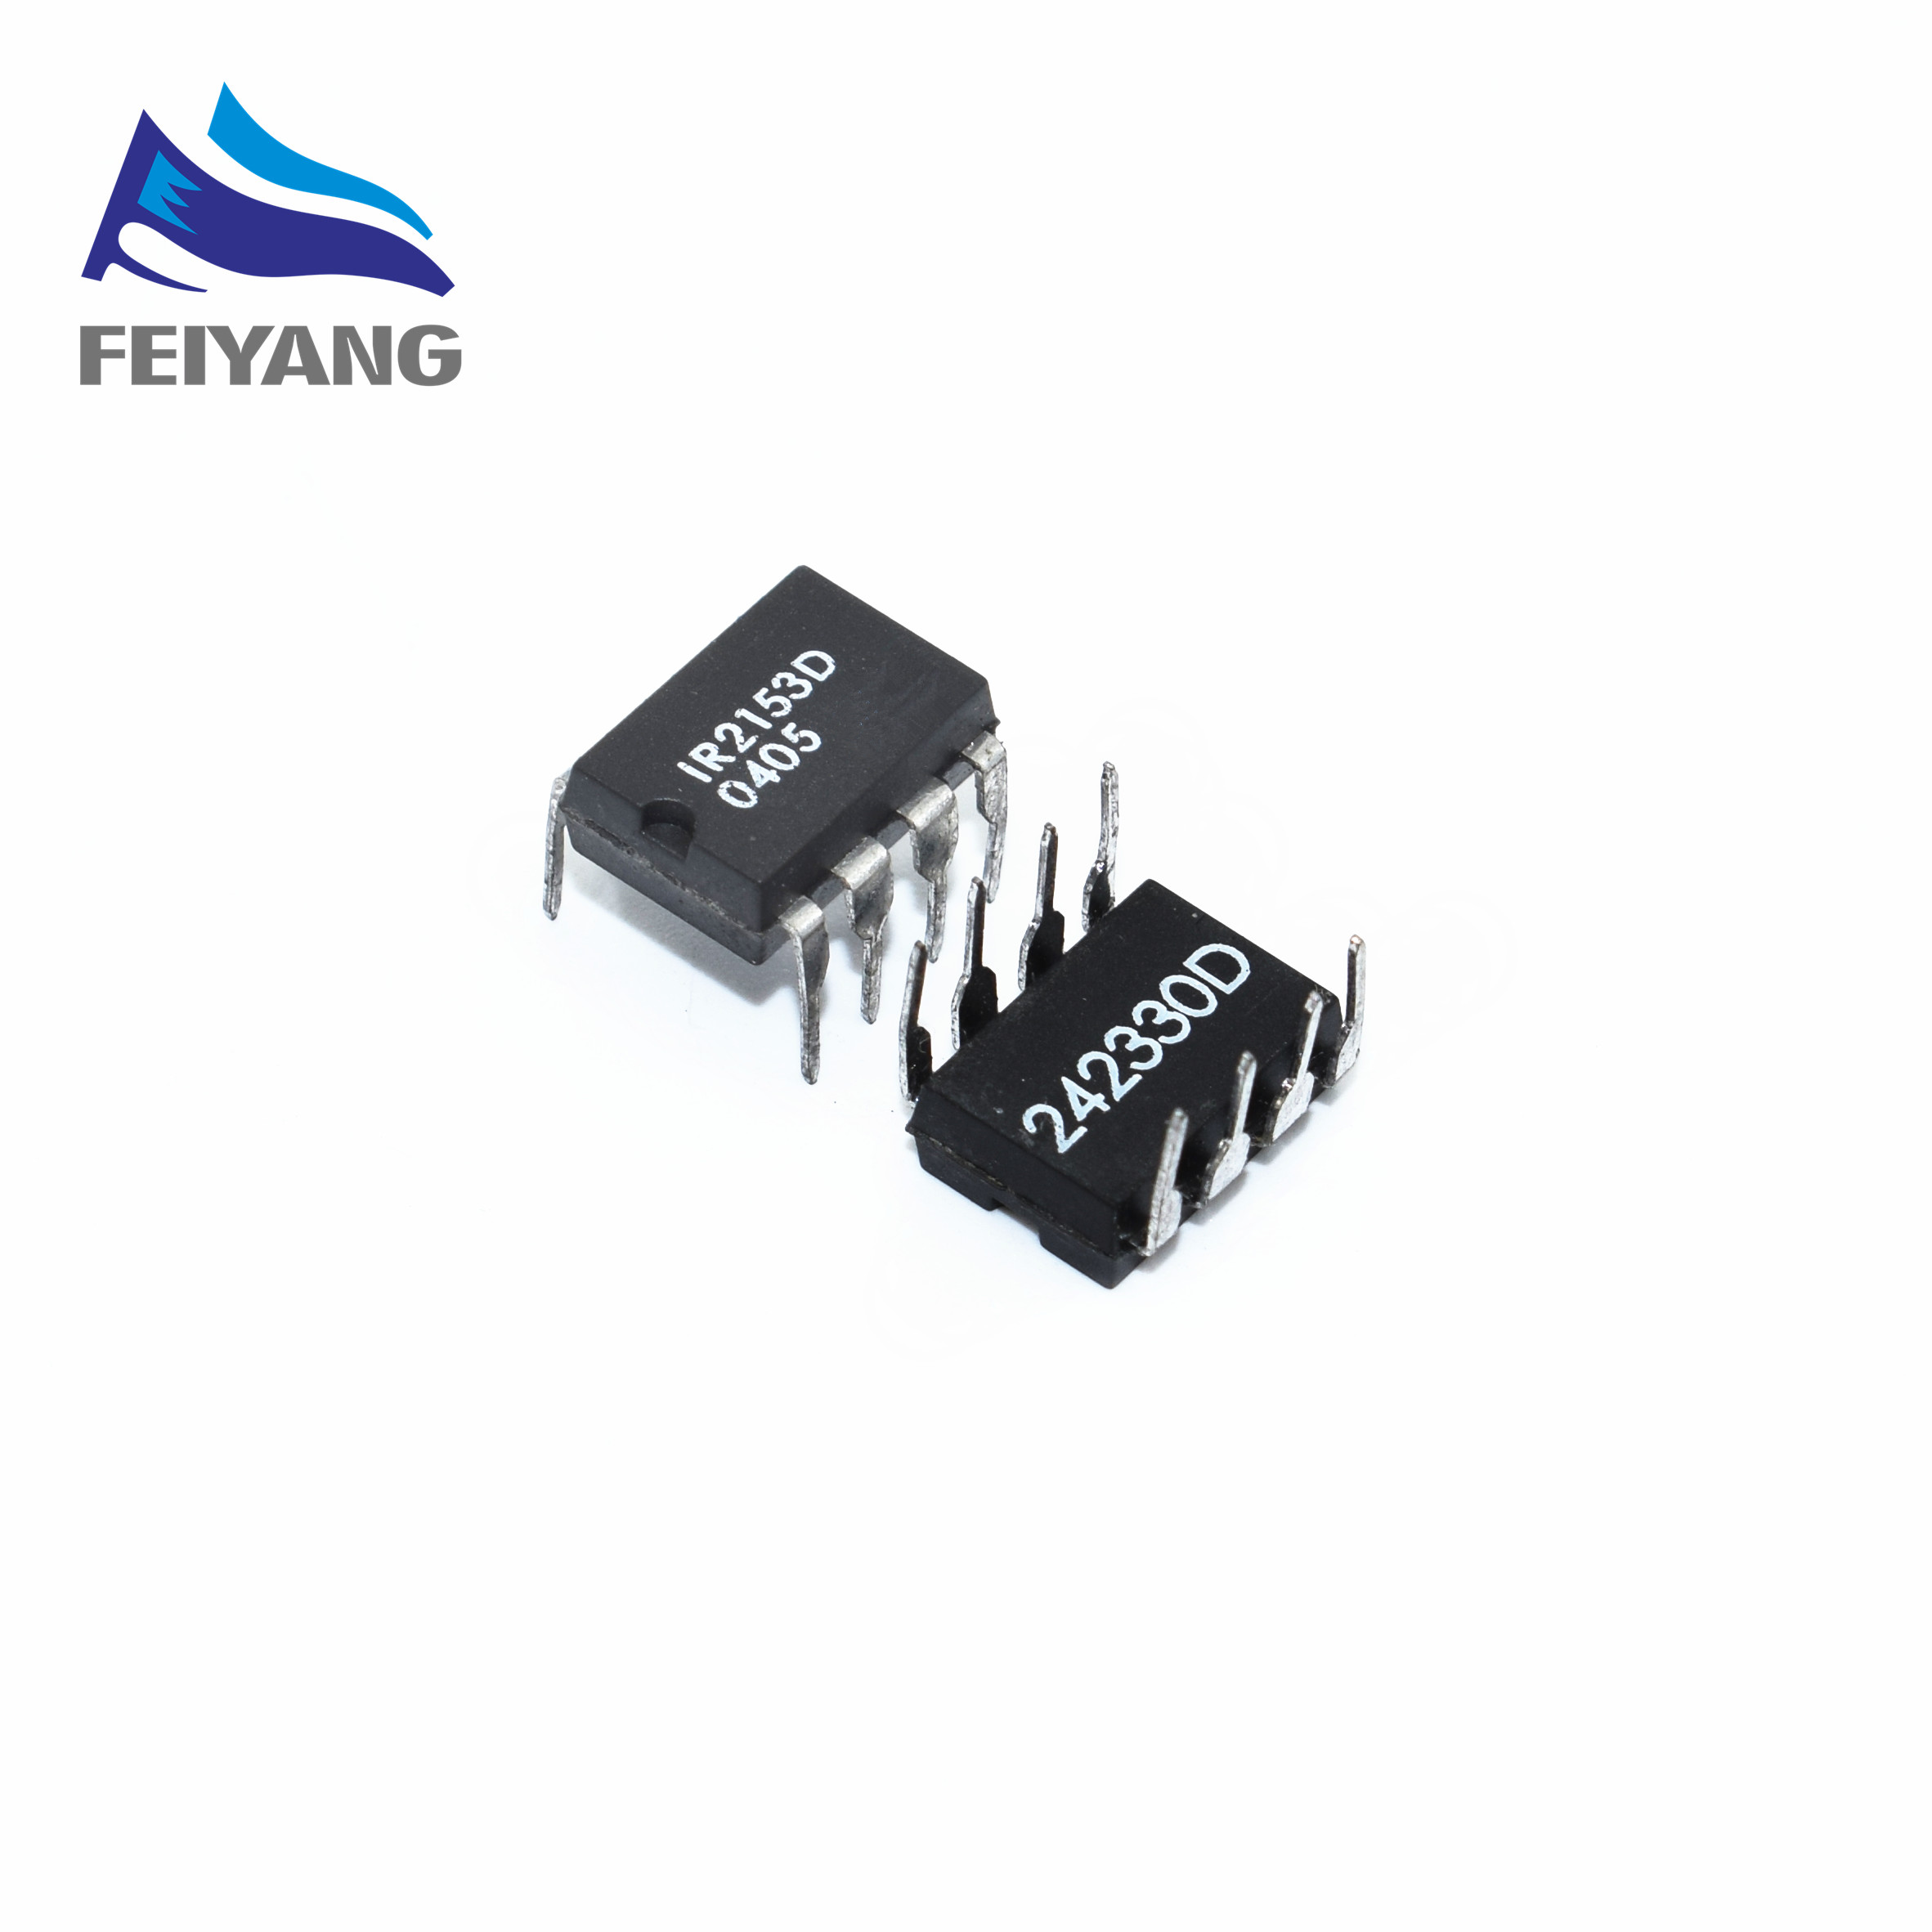 100pcs Free Shipping High Quality IR2153 DIP IR2153D IRS2153DPBF DIP8 IR Bridge Drivers